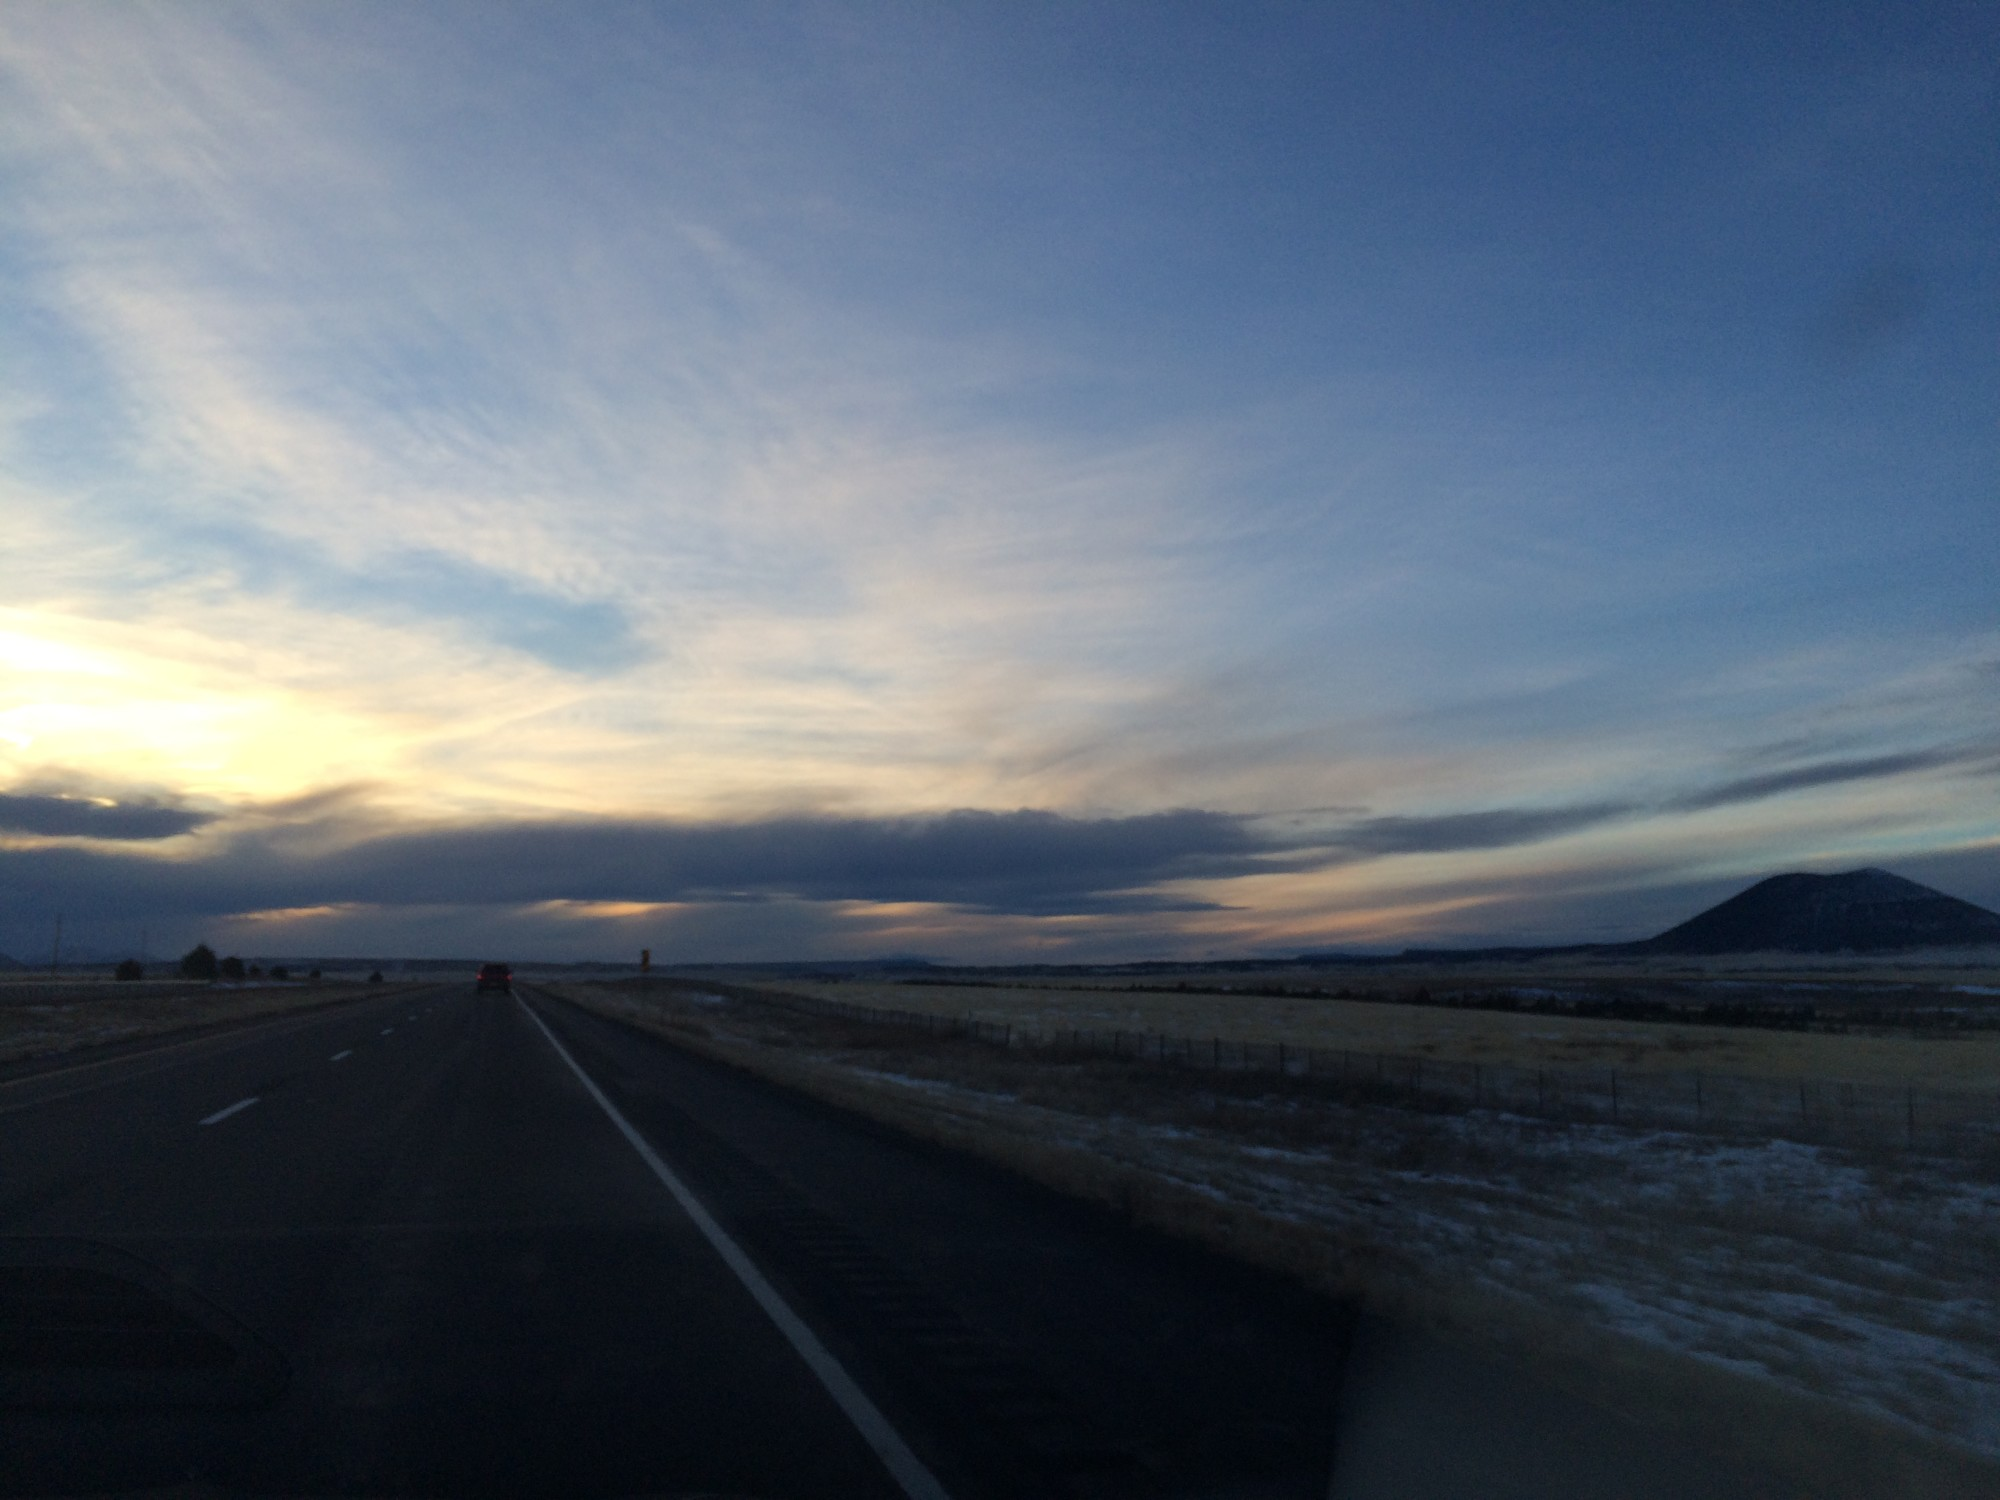 Driving down the highway in New Mexico